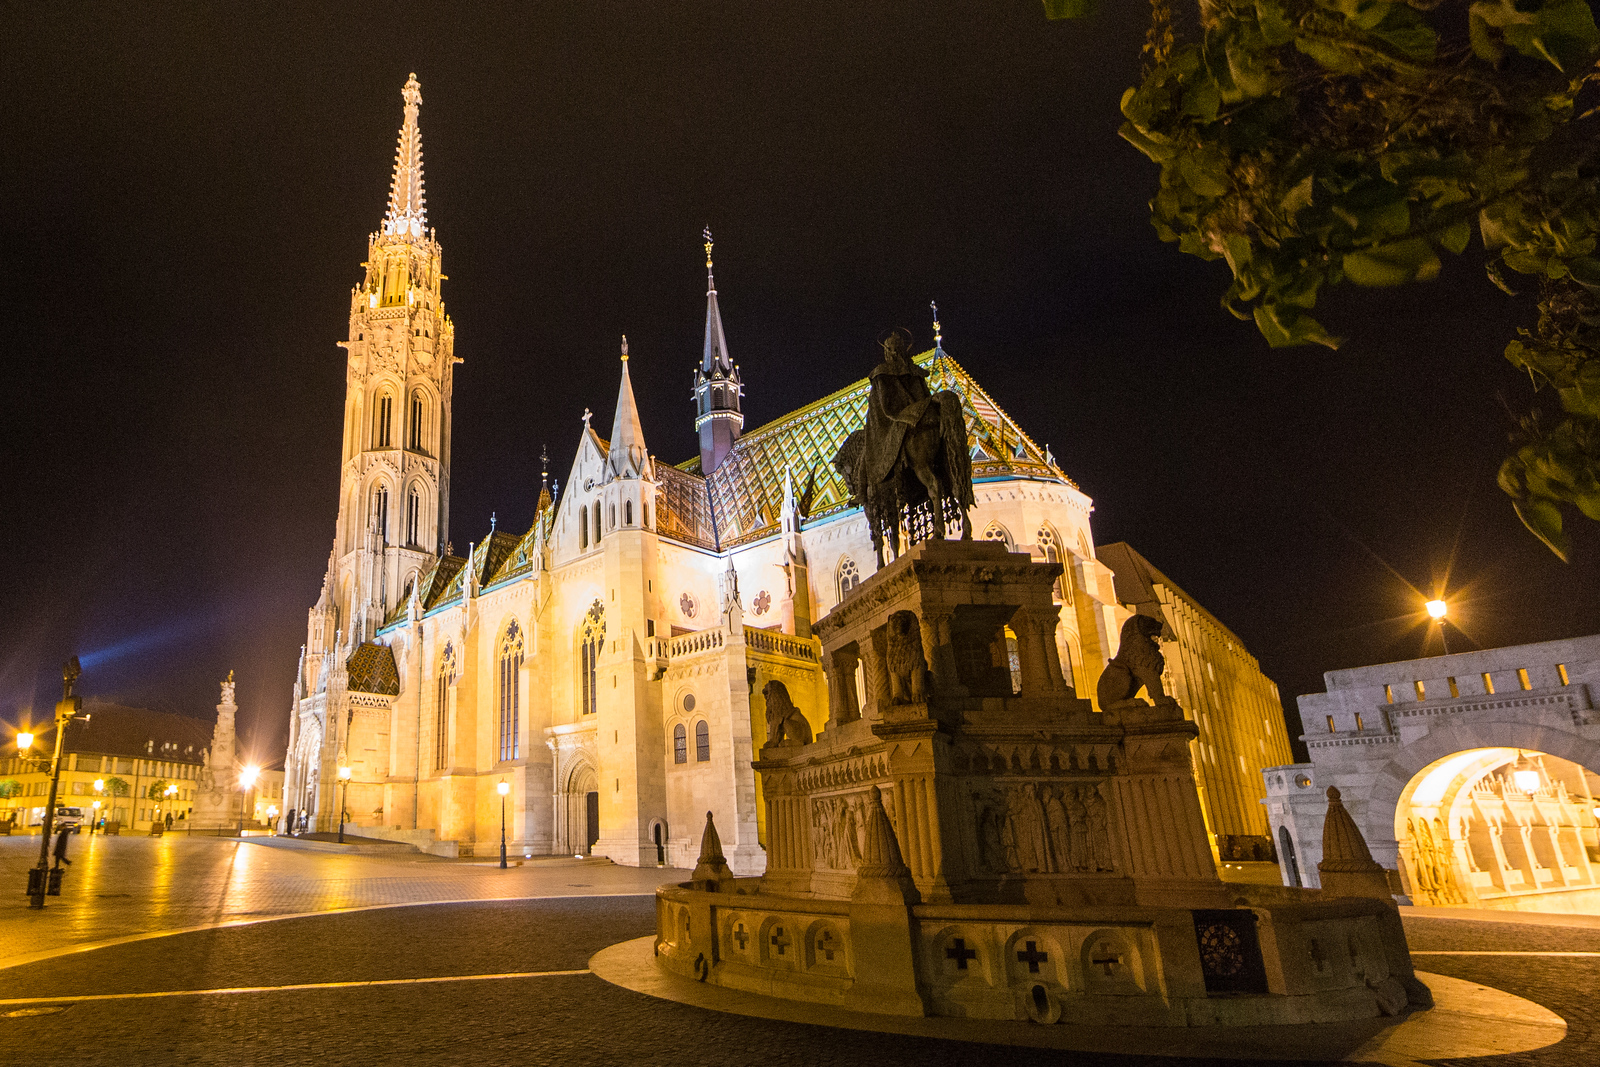 St Mathias church and statue of St Stephens at night